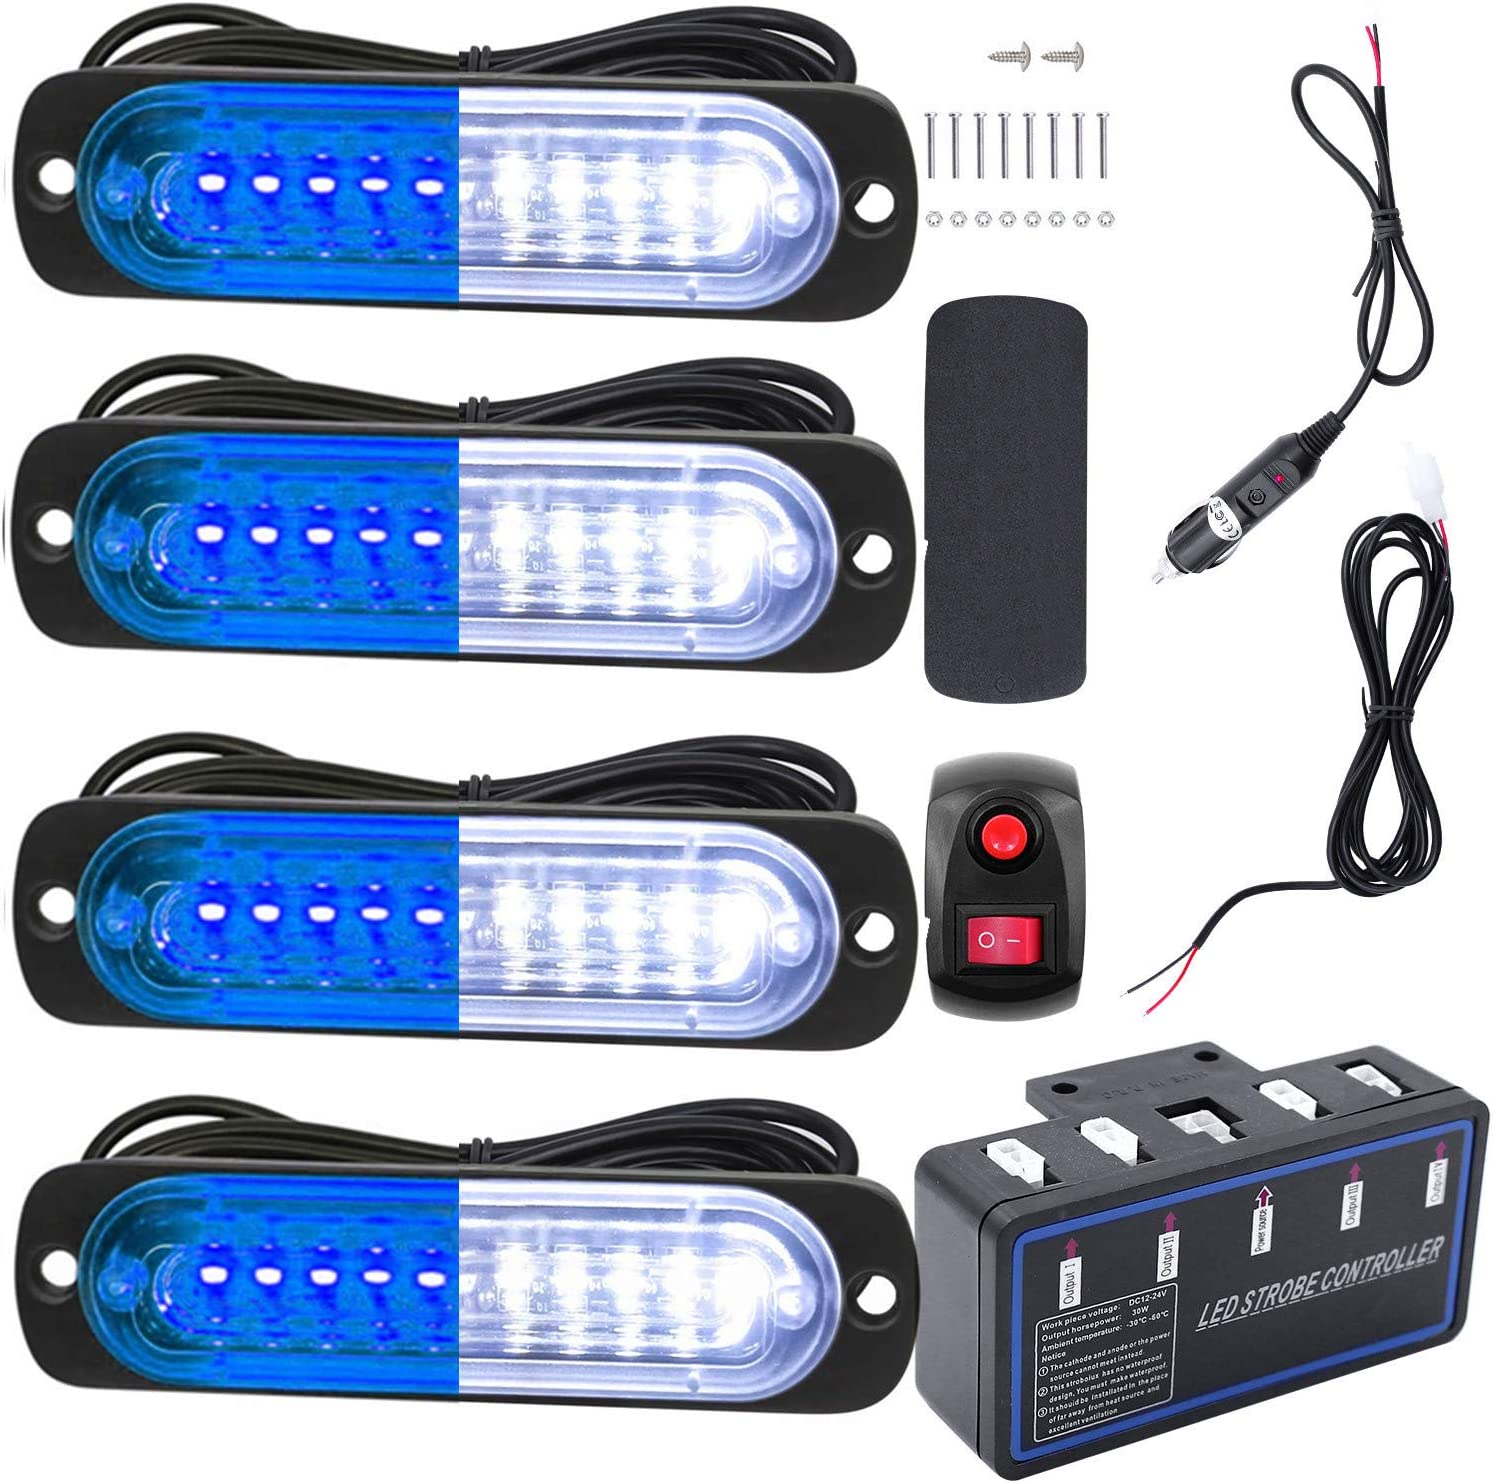 4pcs Emergency Warning Caution Hazard Construction Ultra Slim Sync Feature Car Truck with Main Control Box Surface Mount Led Warning Lights 24LED White Blue